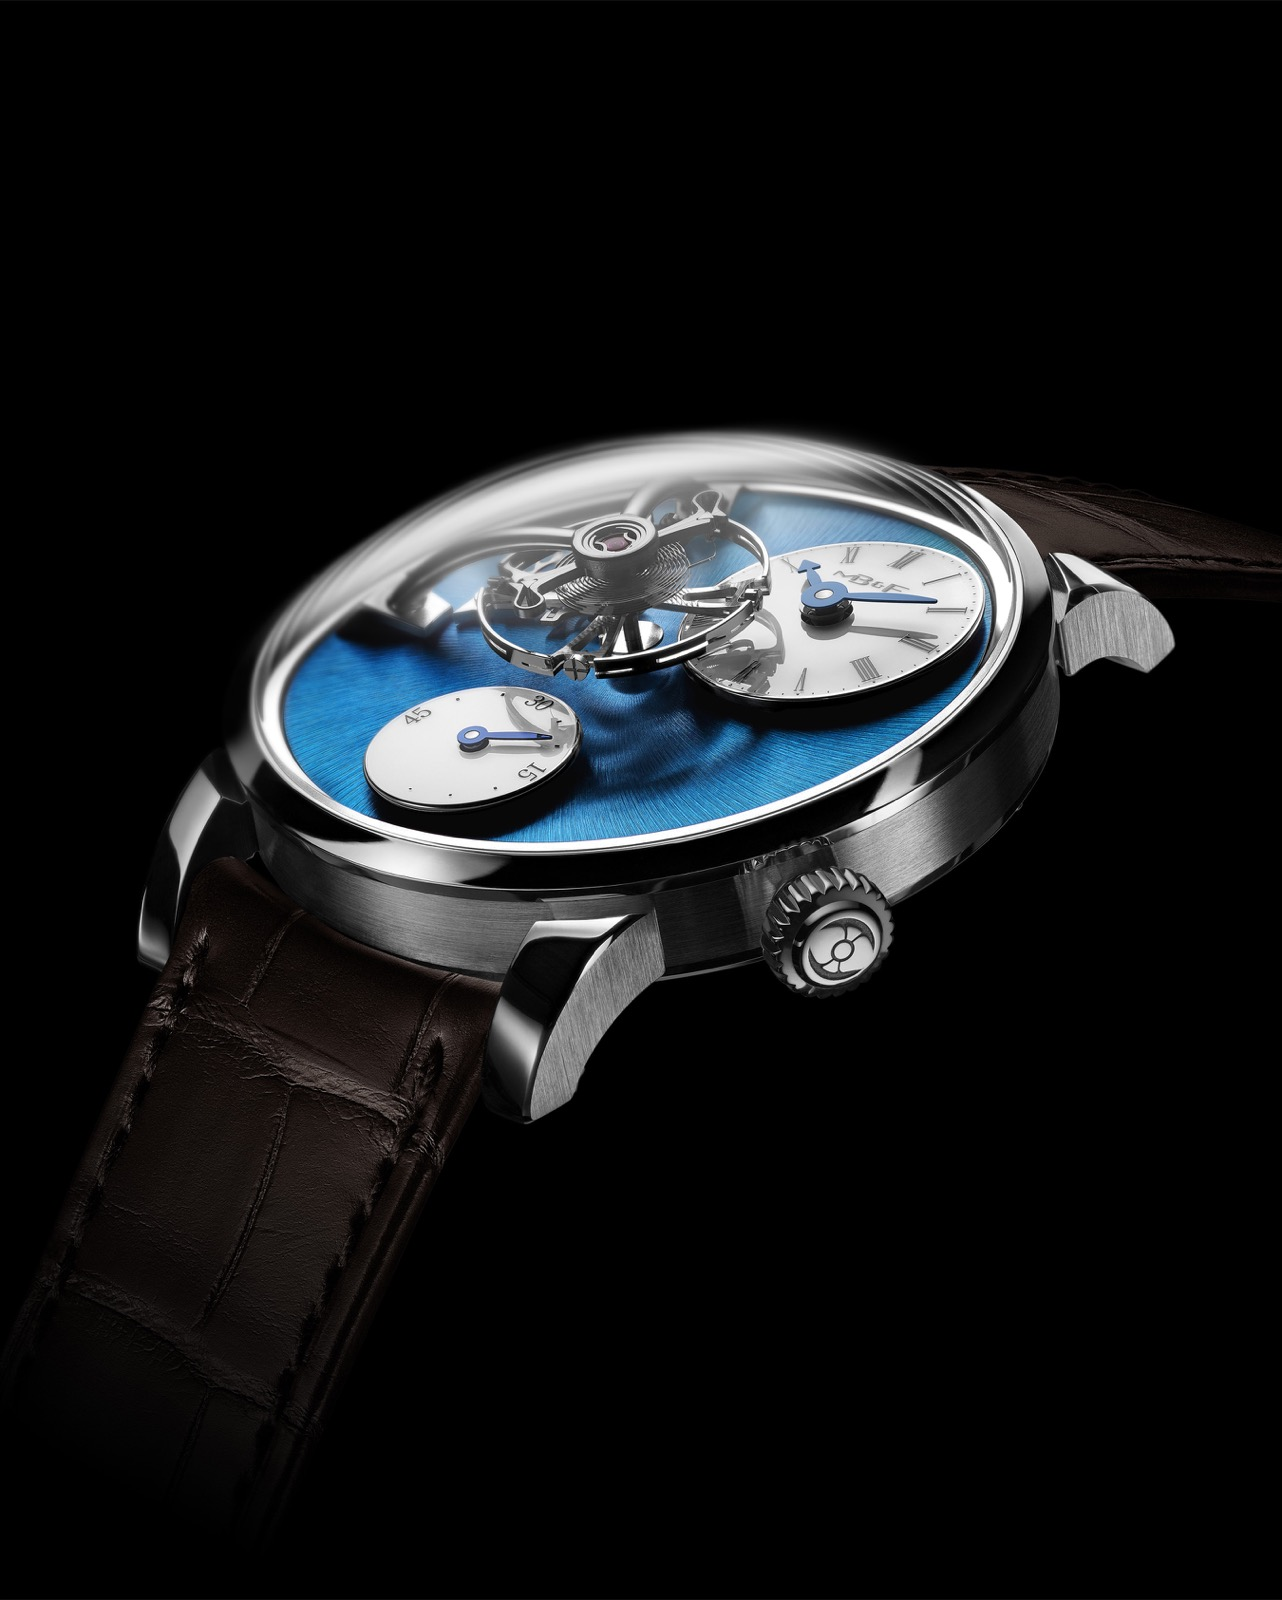 MB&F LM101